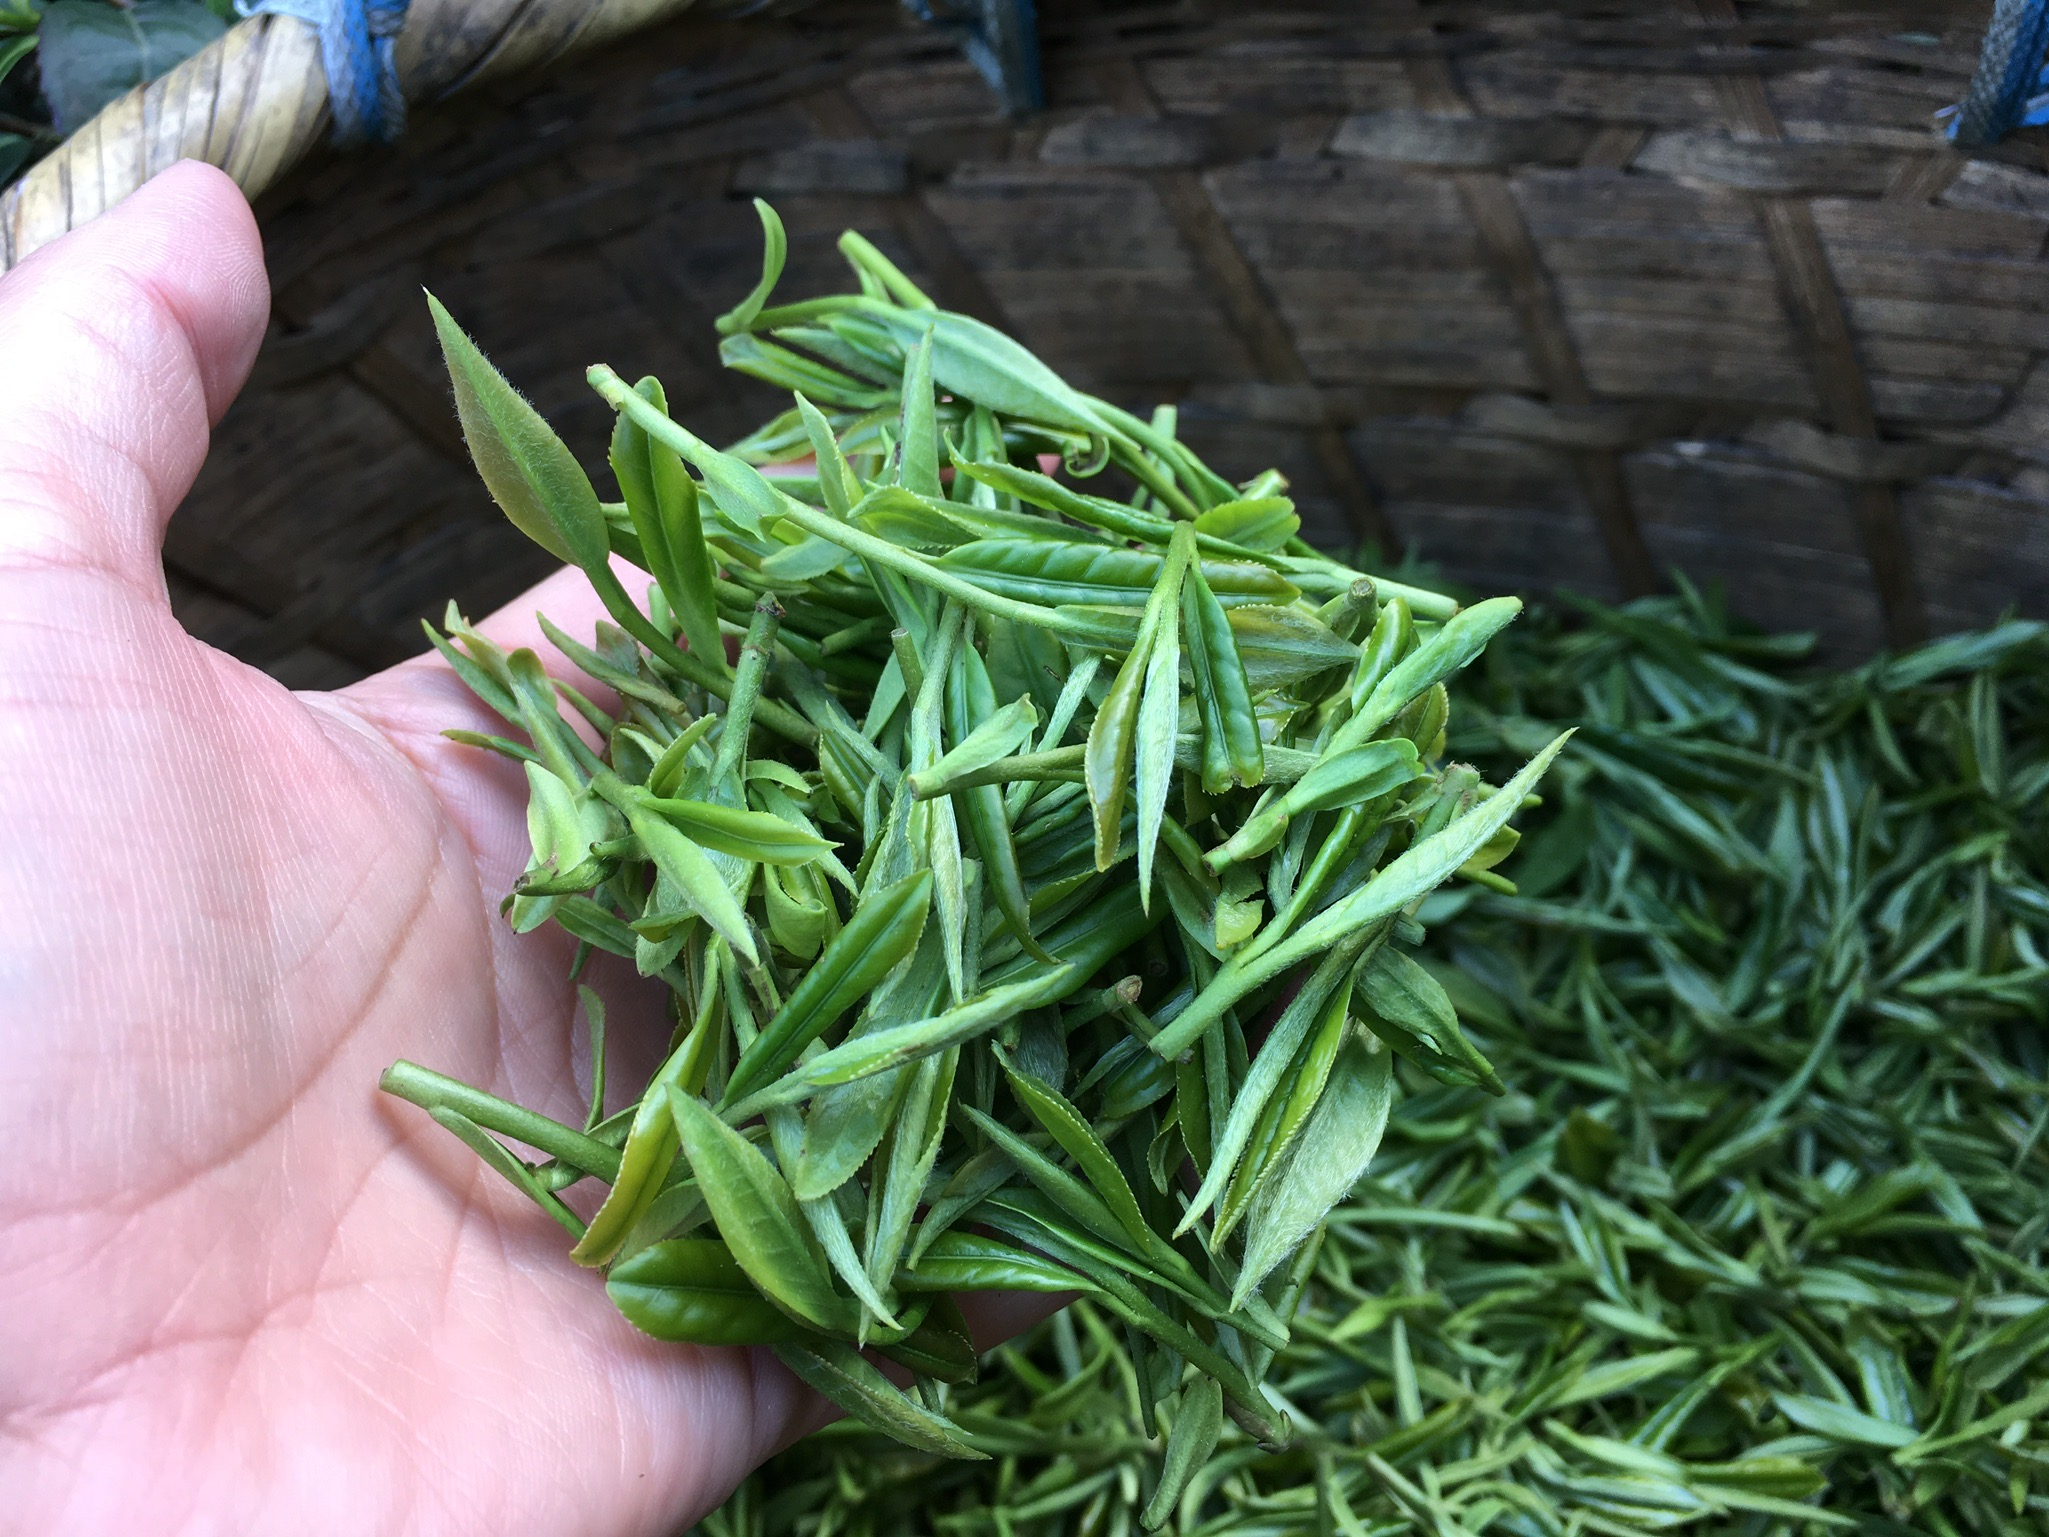 Holding Freshly Picked Green Tea Leaf